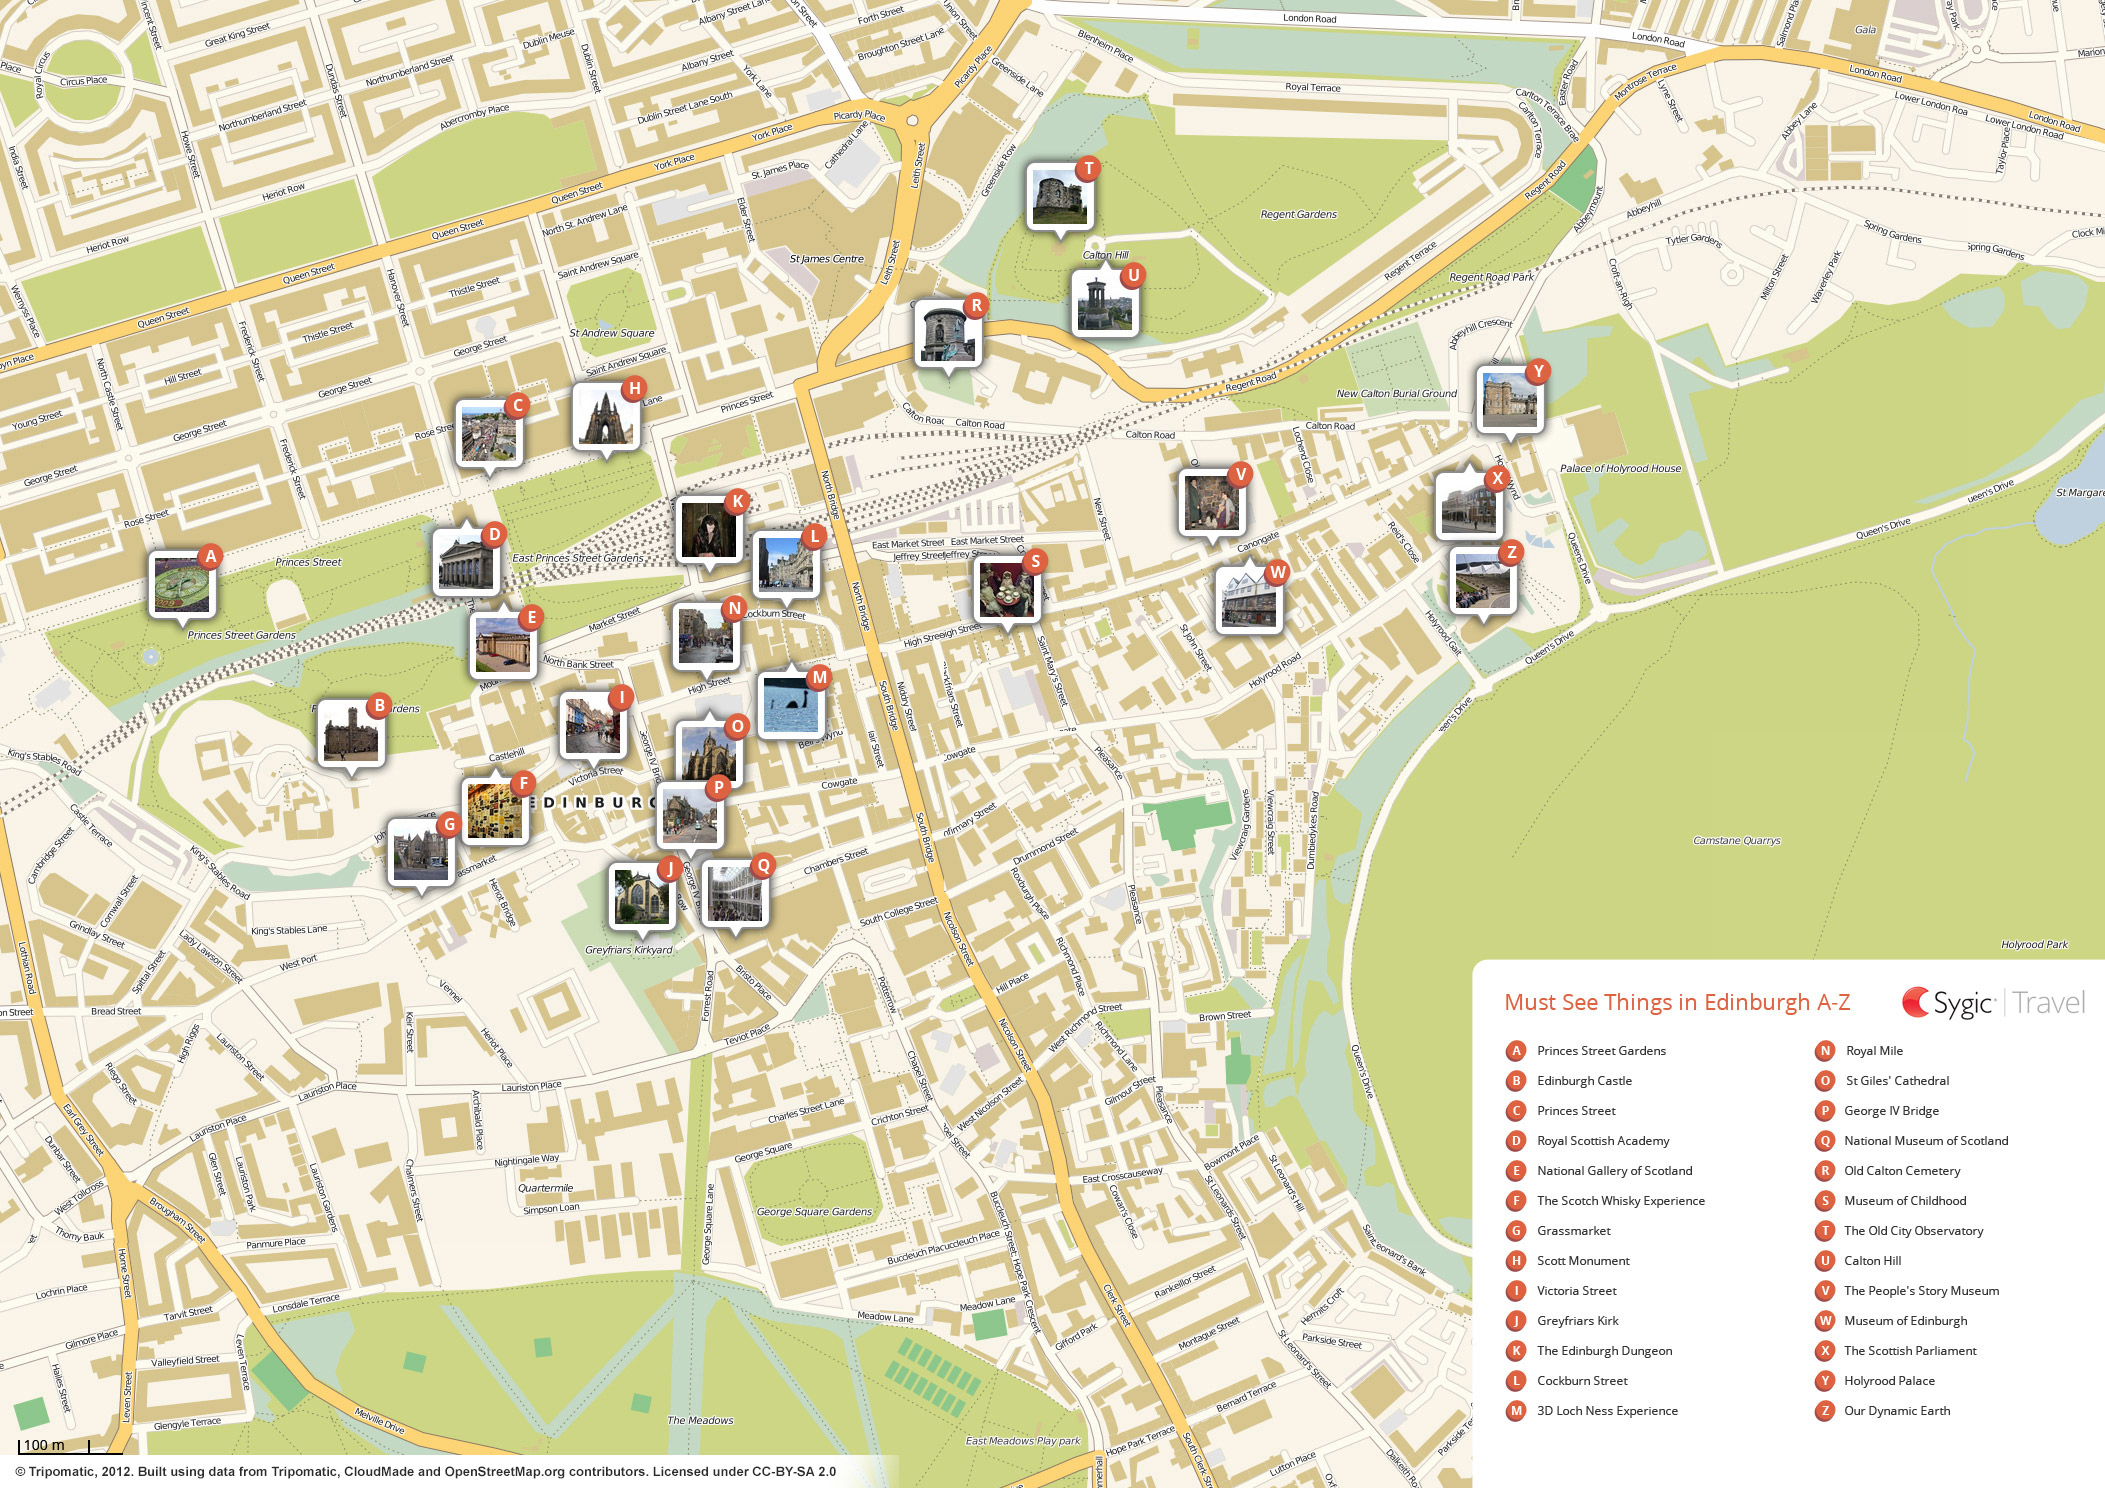 Edinburgh Tourist Map Edinburgh Printable Tourist Map | Sygic Travel